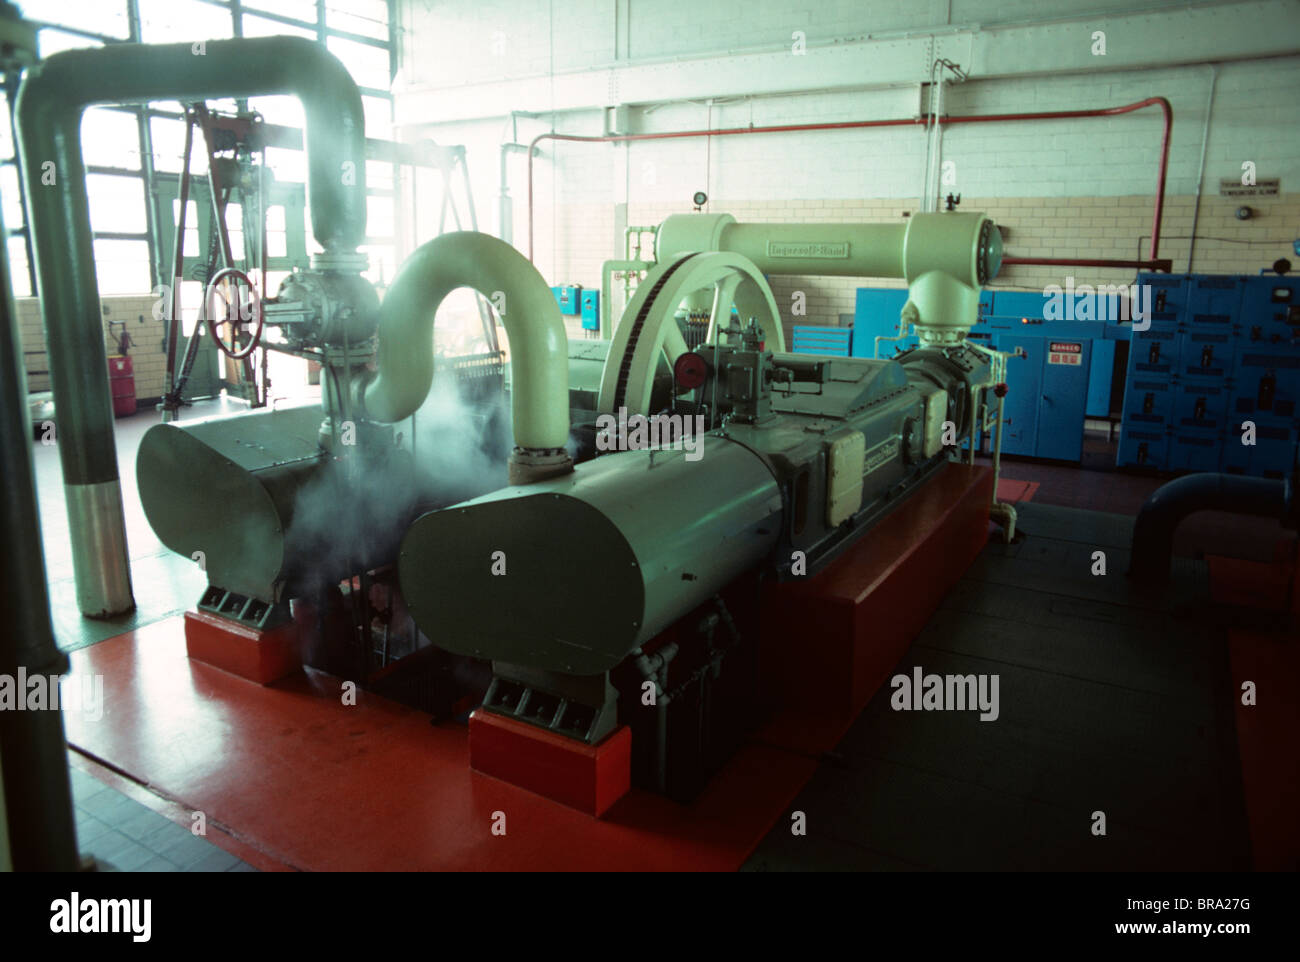 1970s INTERIOR FACTORY MACHINERY GENERATOR IN AUTOMOBILE PLANT - Stock Image